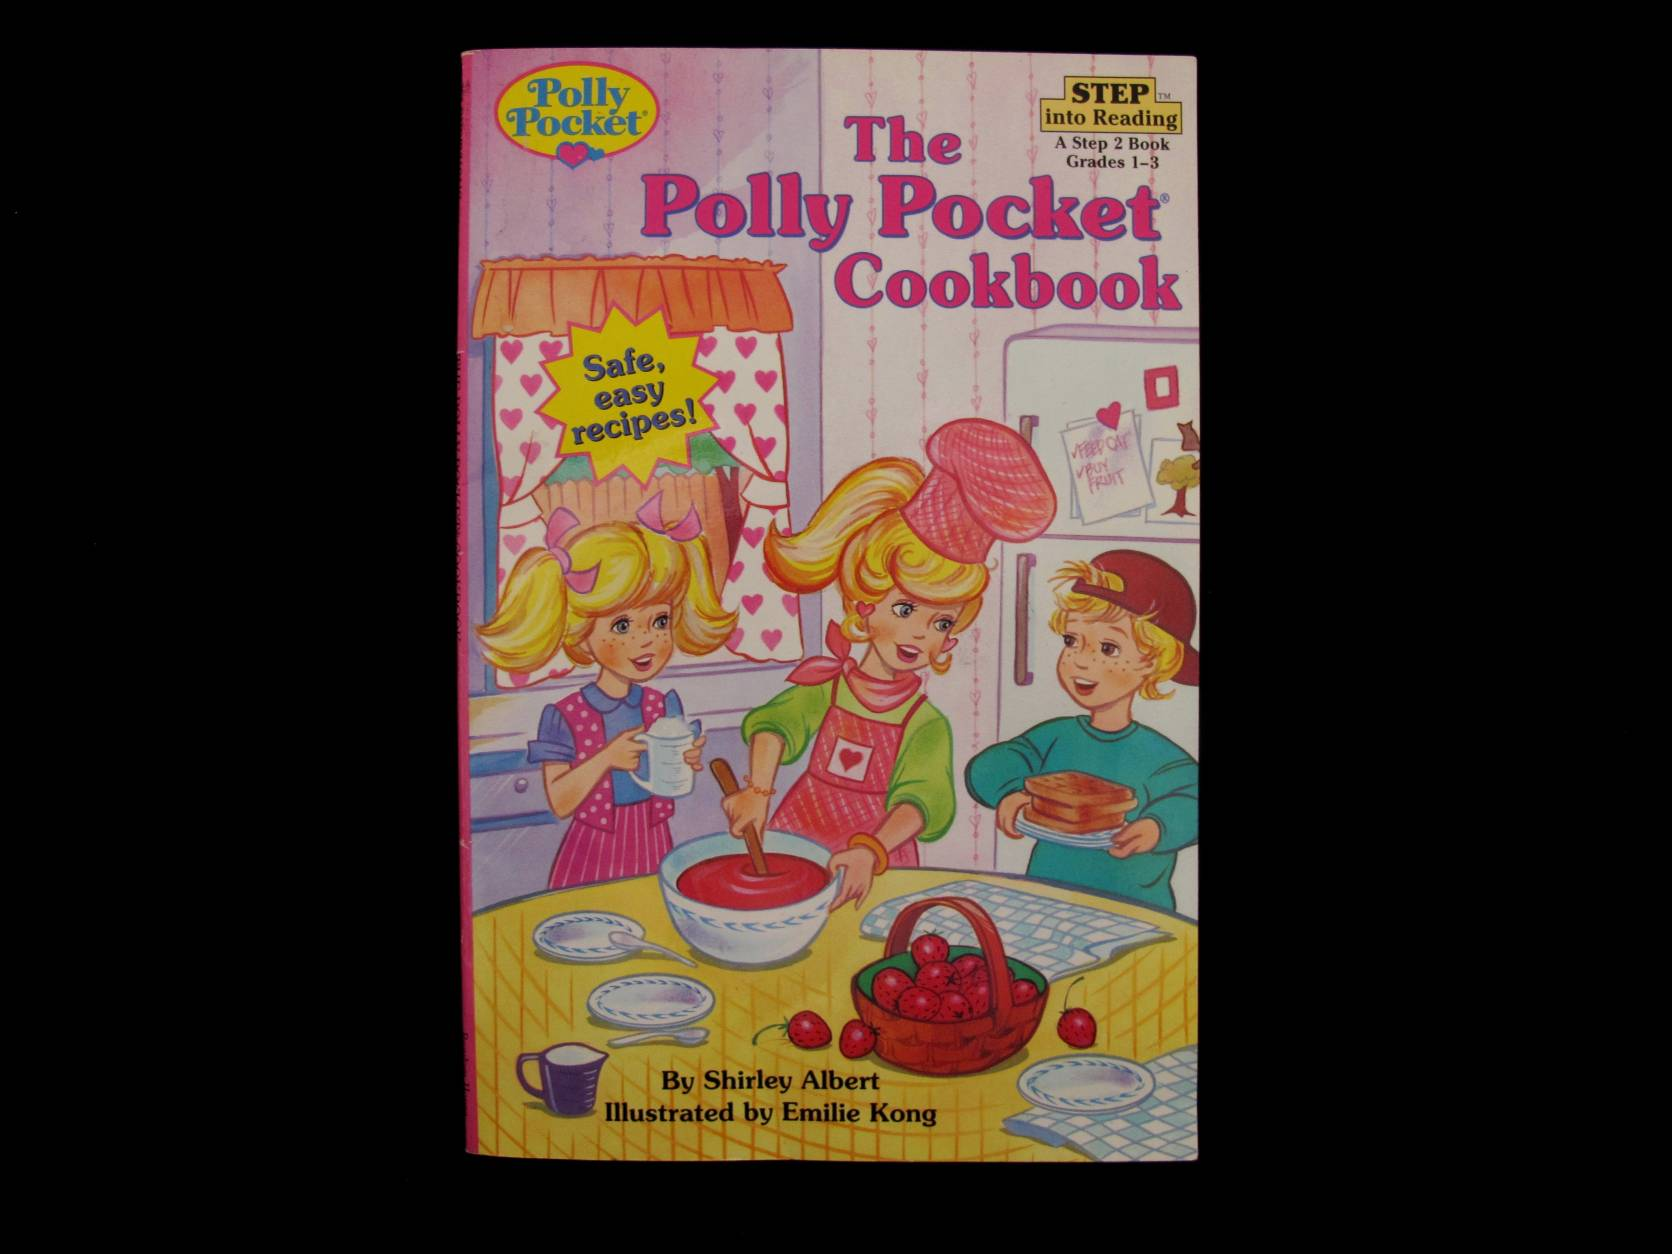 1996 Polly Pocket Cookbook (1)